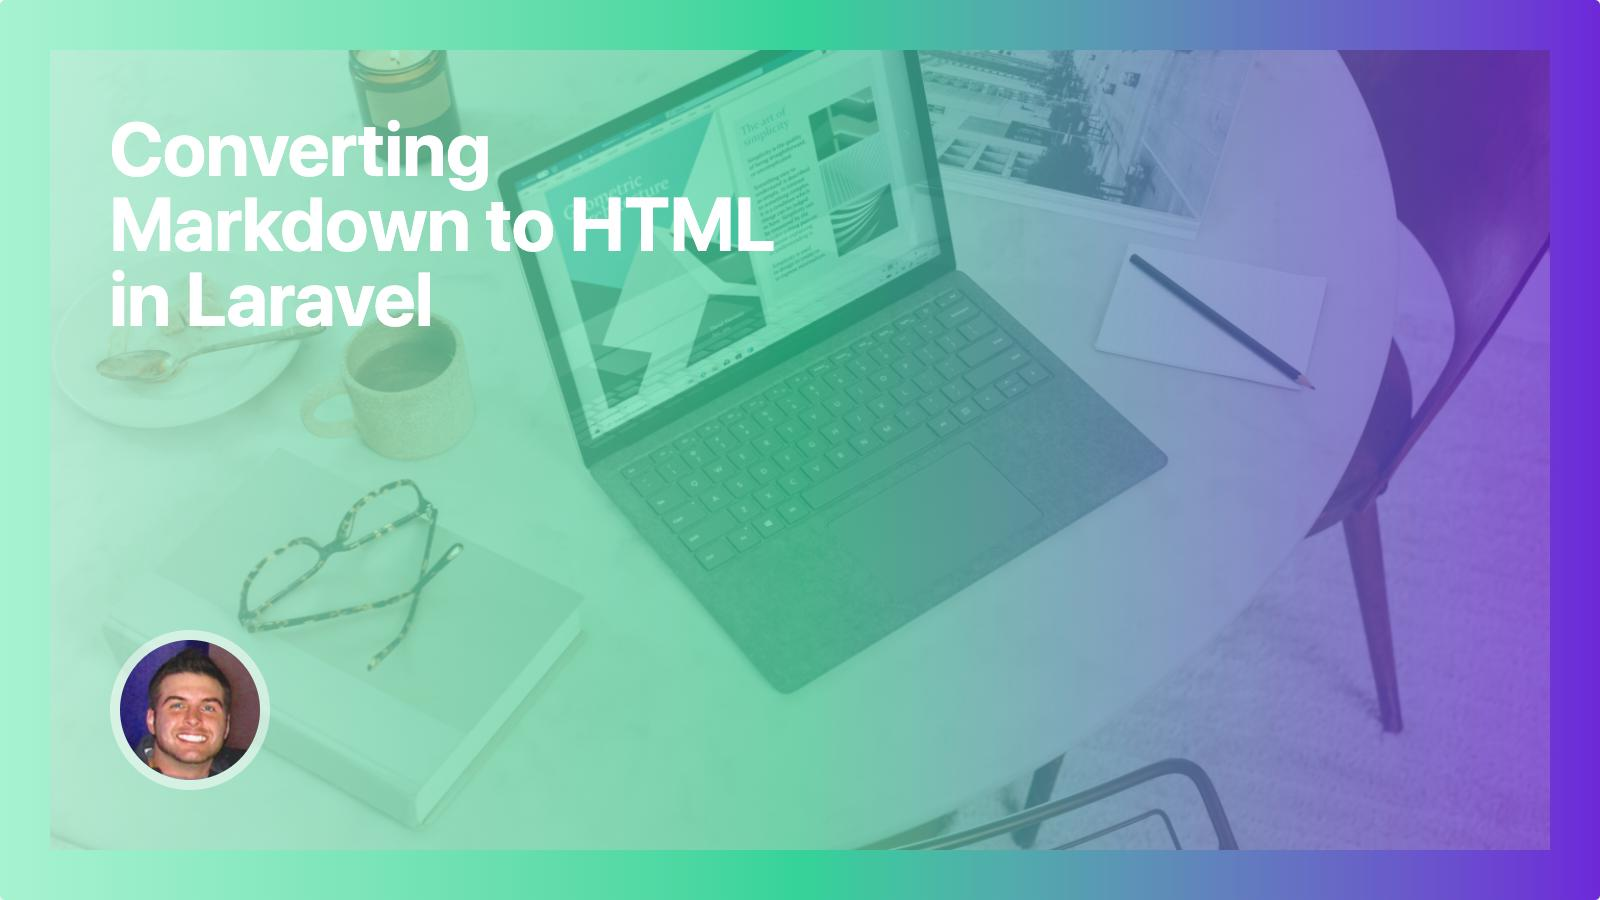 Converting Markdown to HTML in Laravel